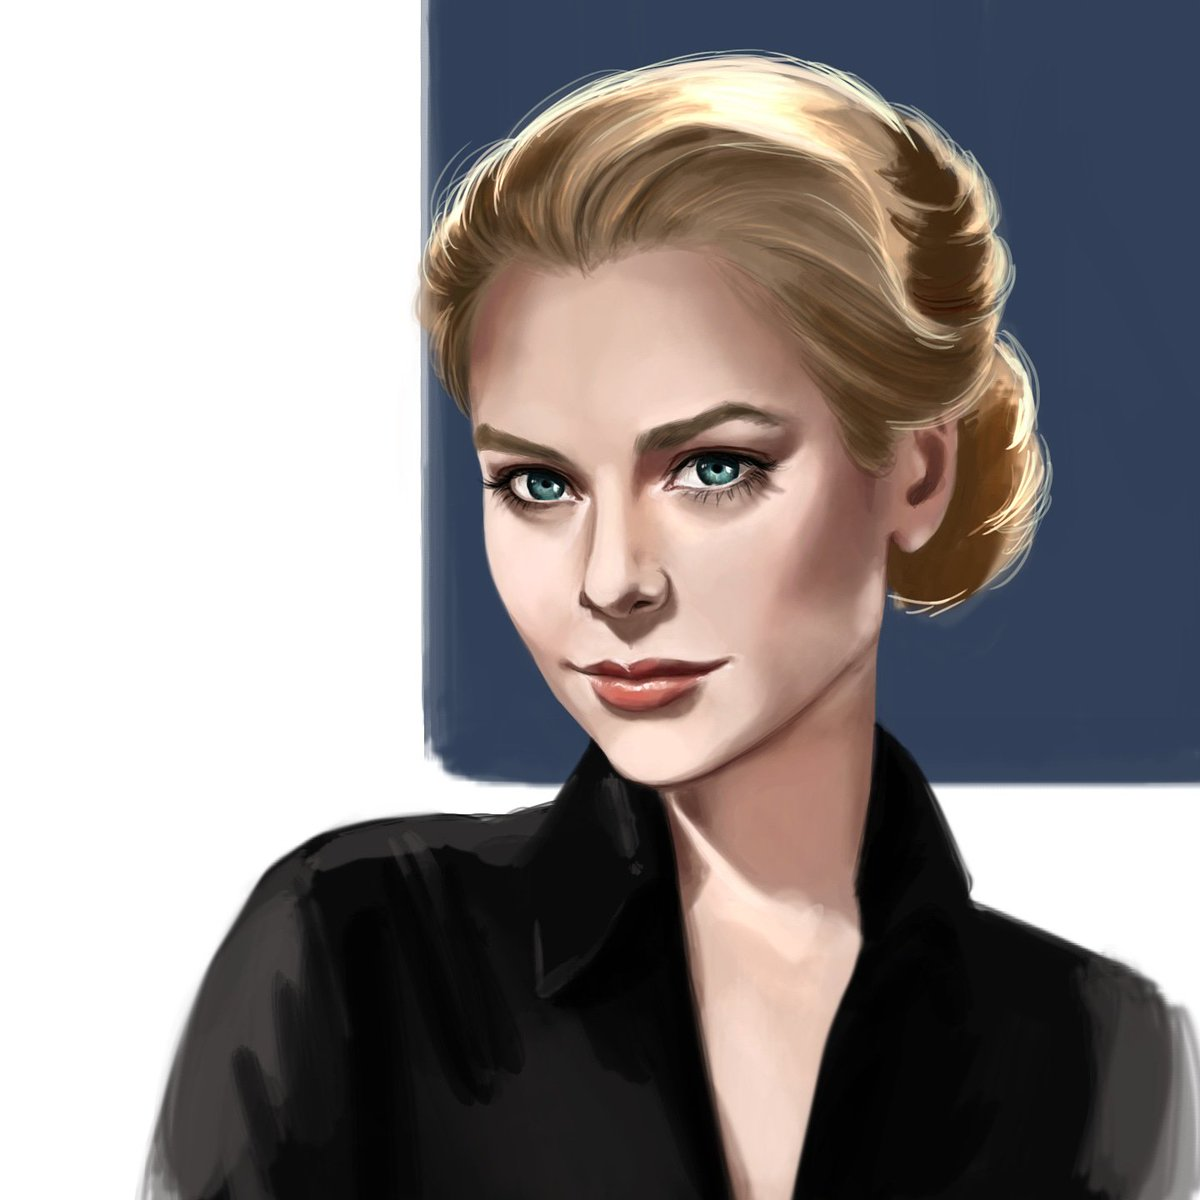 #gracekelly was a fun one to #draw  . . #digitalart #DigitalArtist #yeg #ArtistOnTwitter #arts #beautiful #illustration #Timeless #artistic #Grace #painting